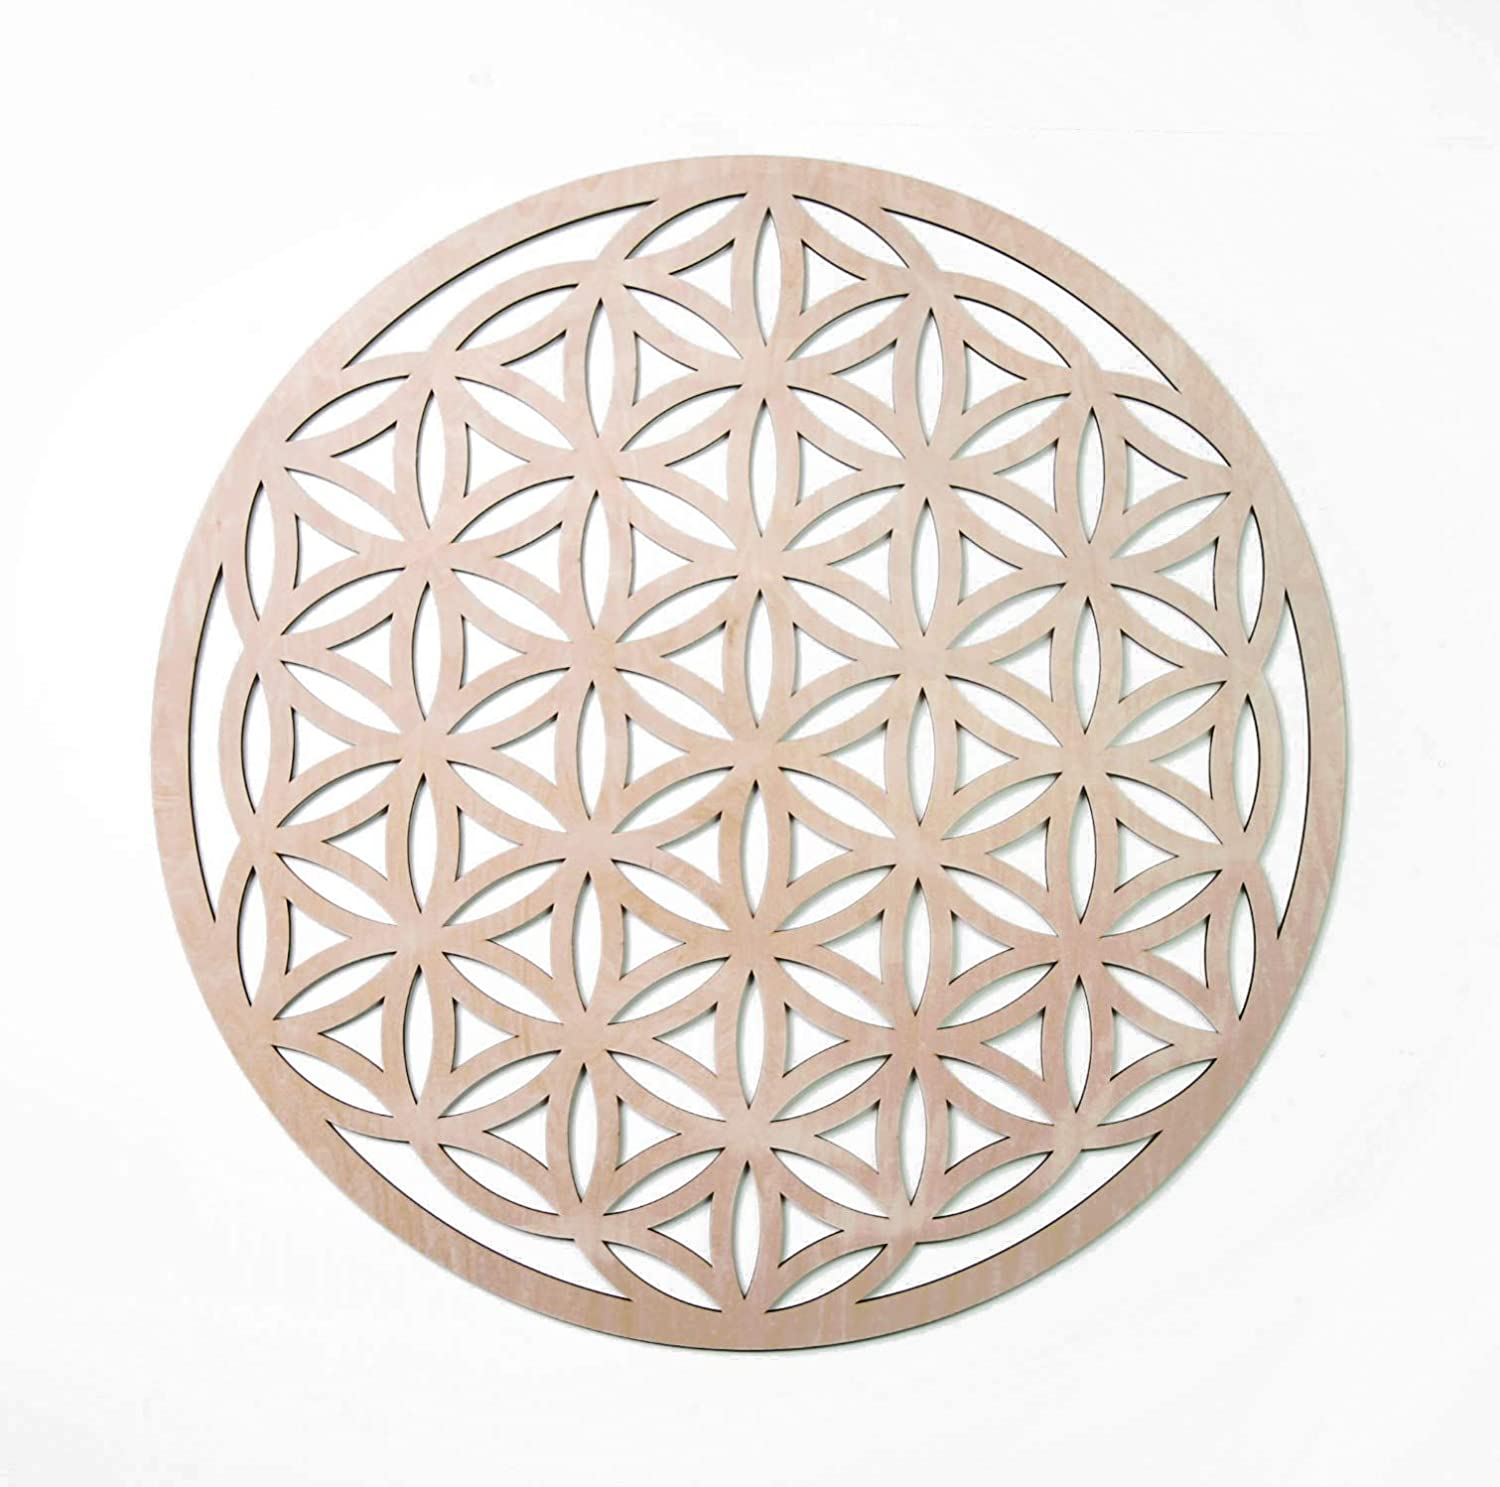 "33"" Flower of Life, Seed of Life, Home Decor, Wooden Wall Art, Sacred Geometry Art, Sculpture, Wall Decorations, Chakra Banner, Crystal Grid"